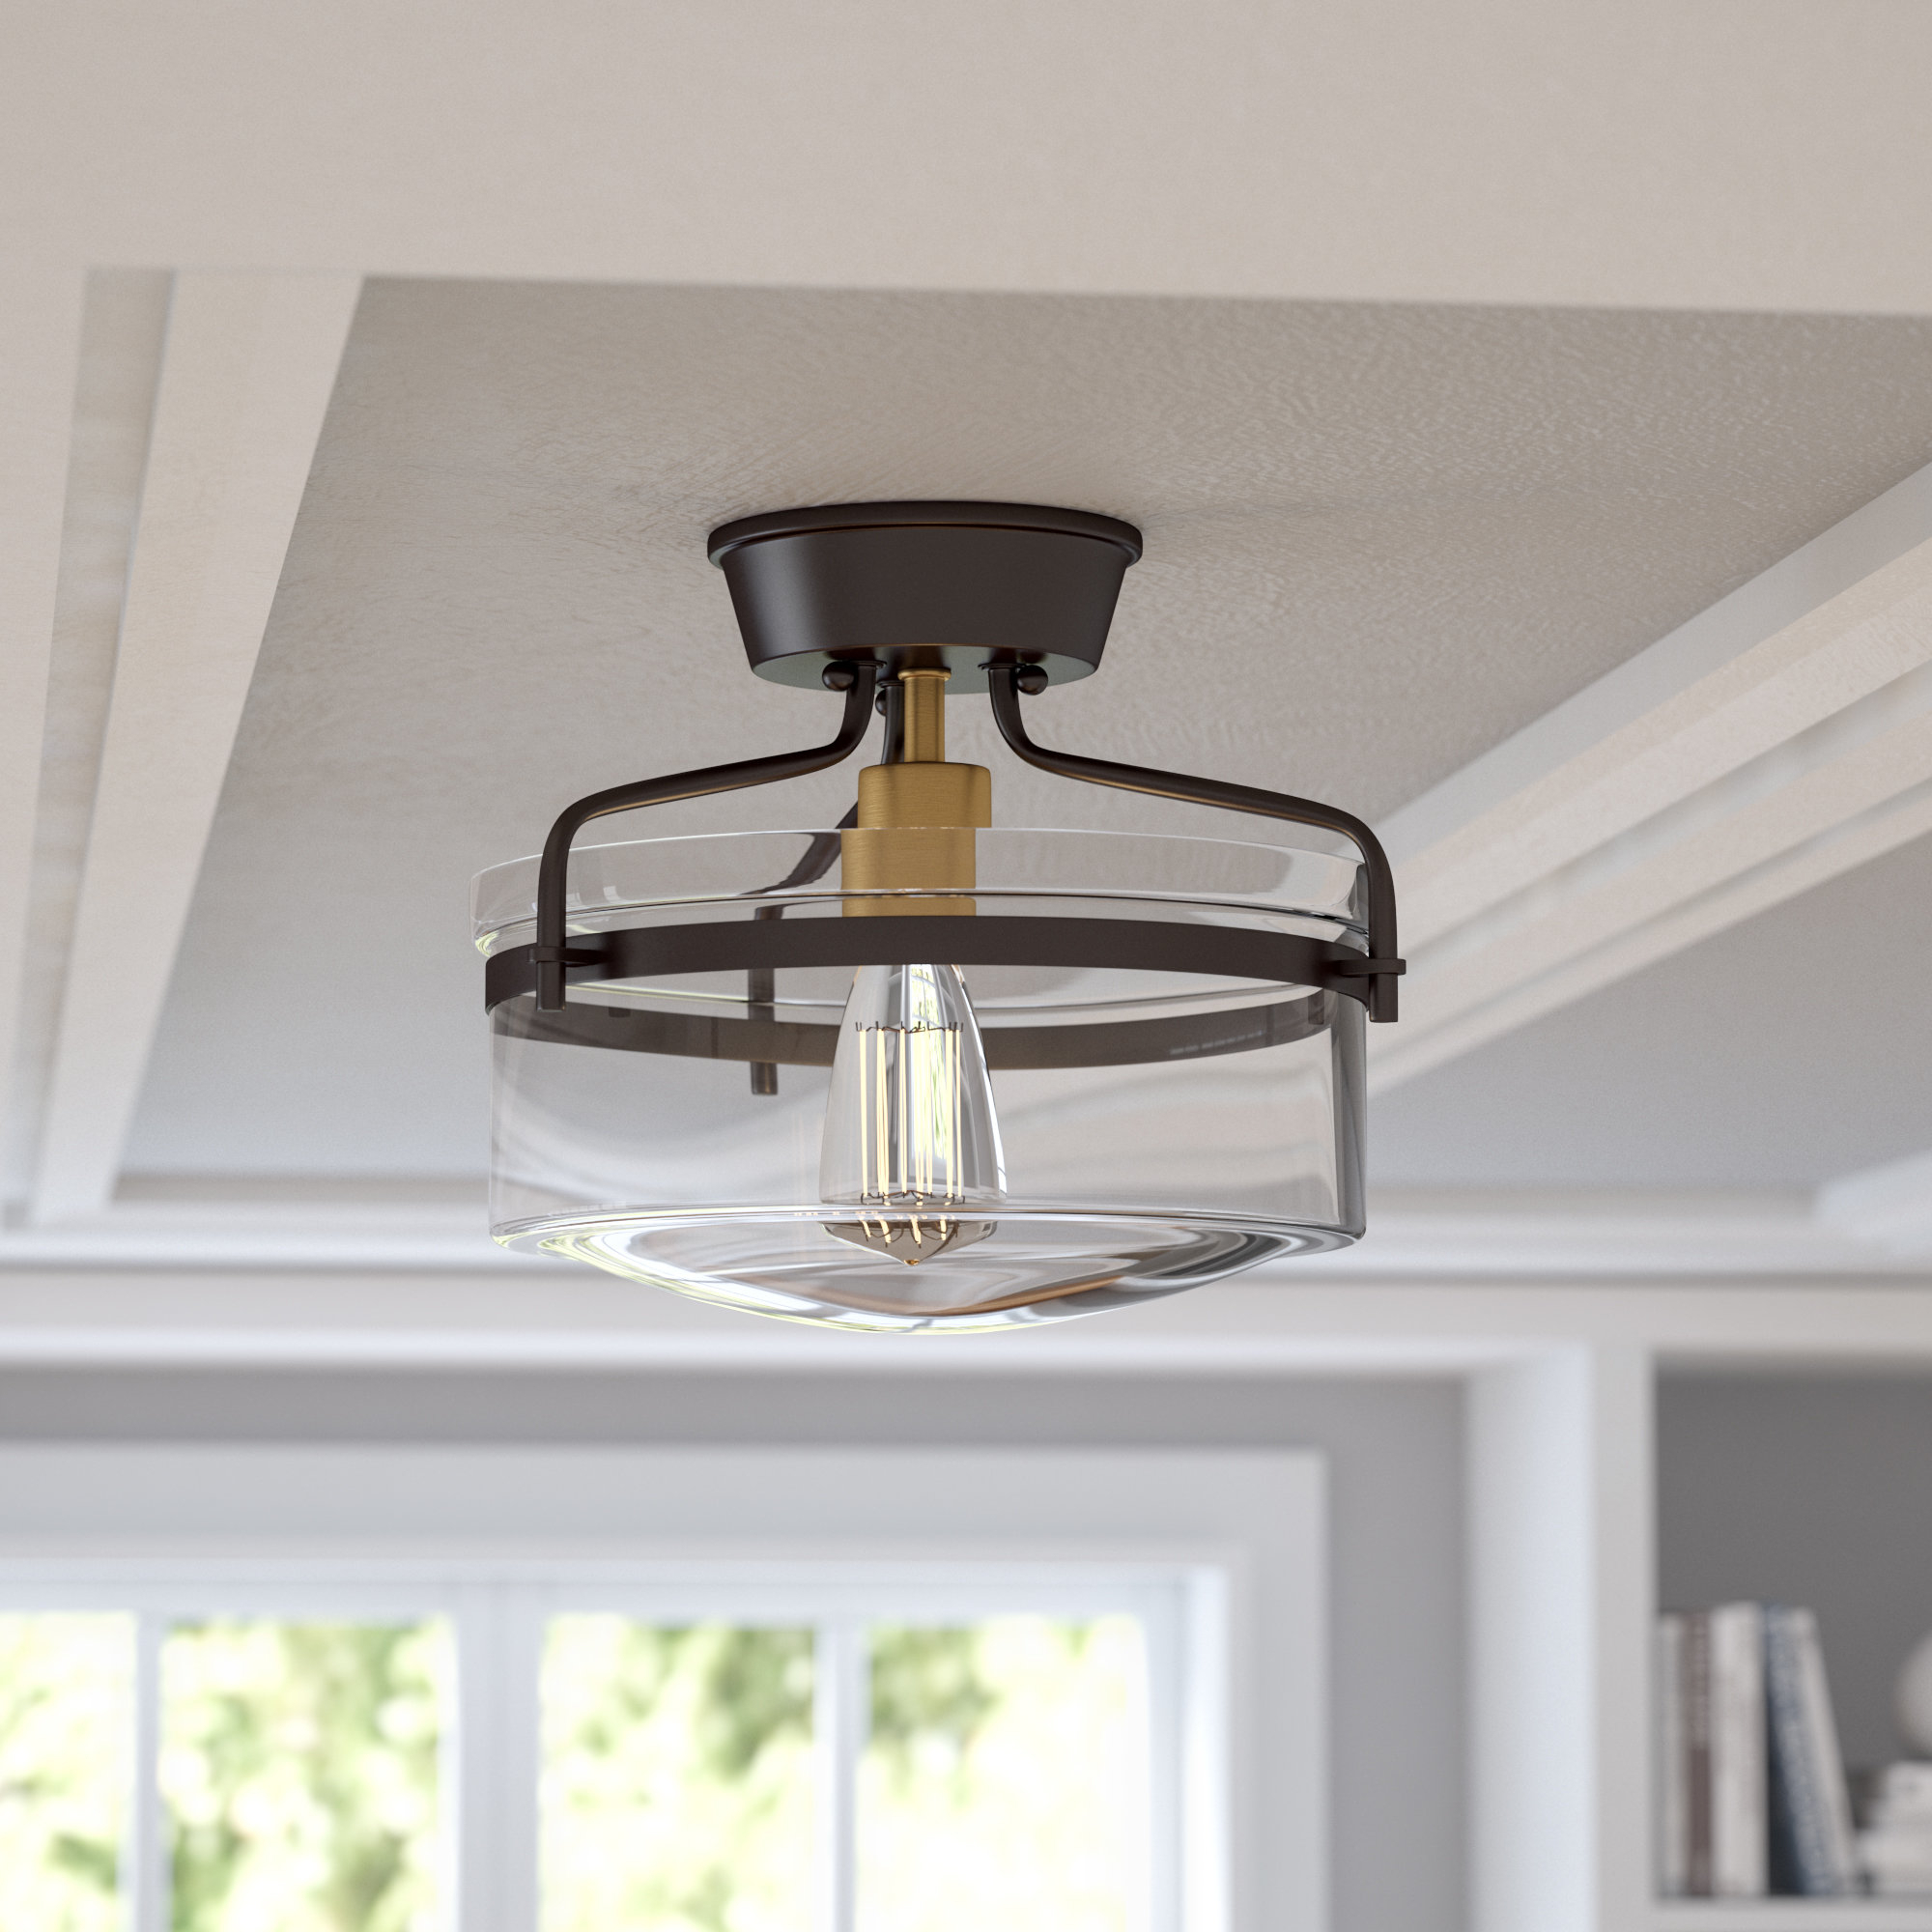 Sussex 1 Light Single Geometric Pendants Within Newest Birch Lane™ Heritage Sussex 1 Light Single Geometric Pendant (Gallery 18 of 20)